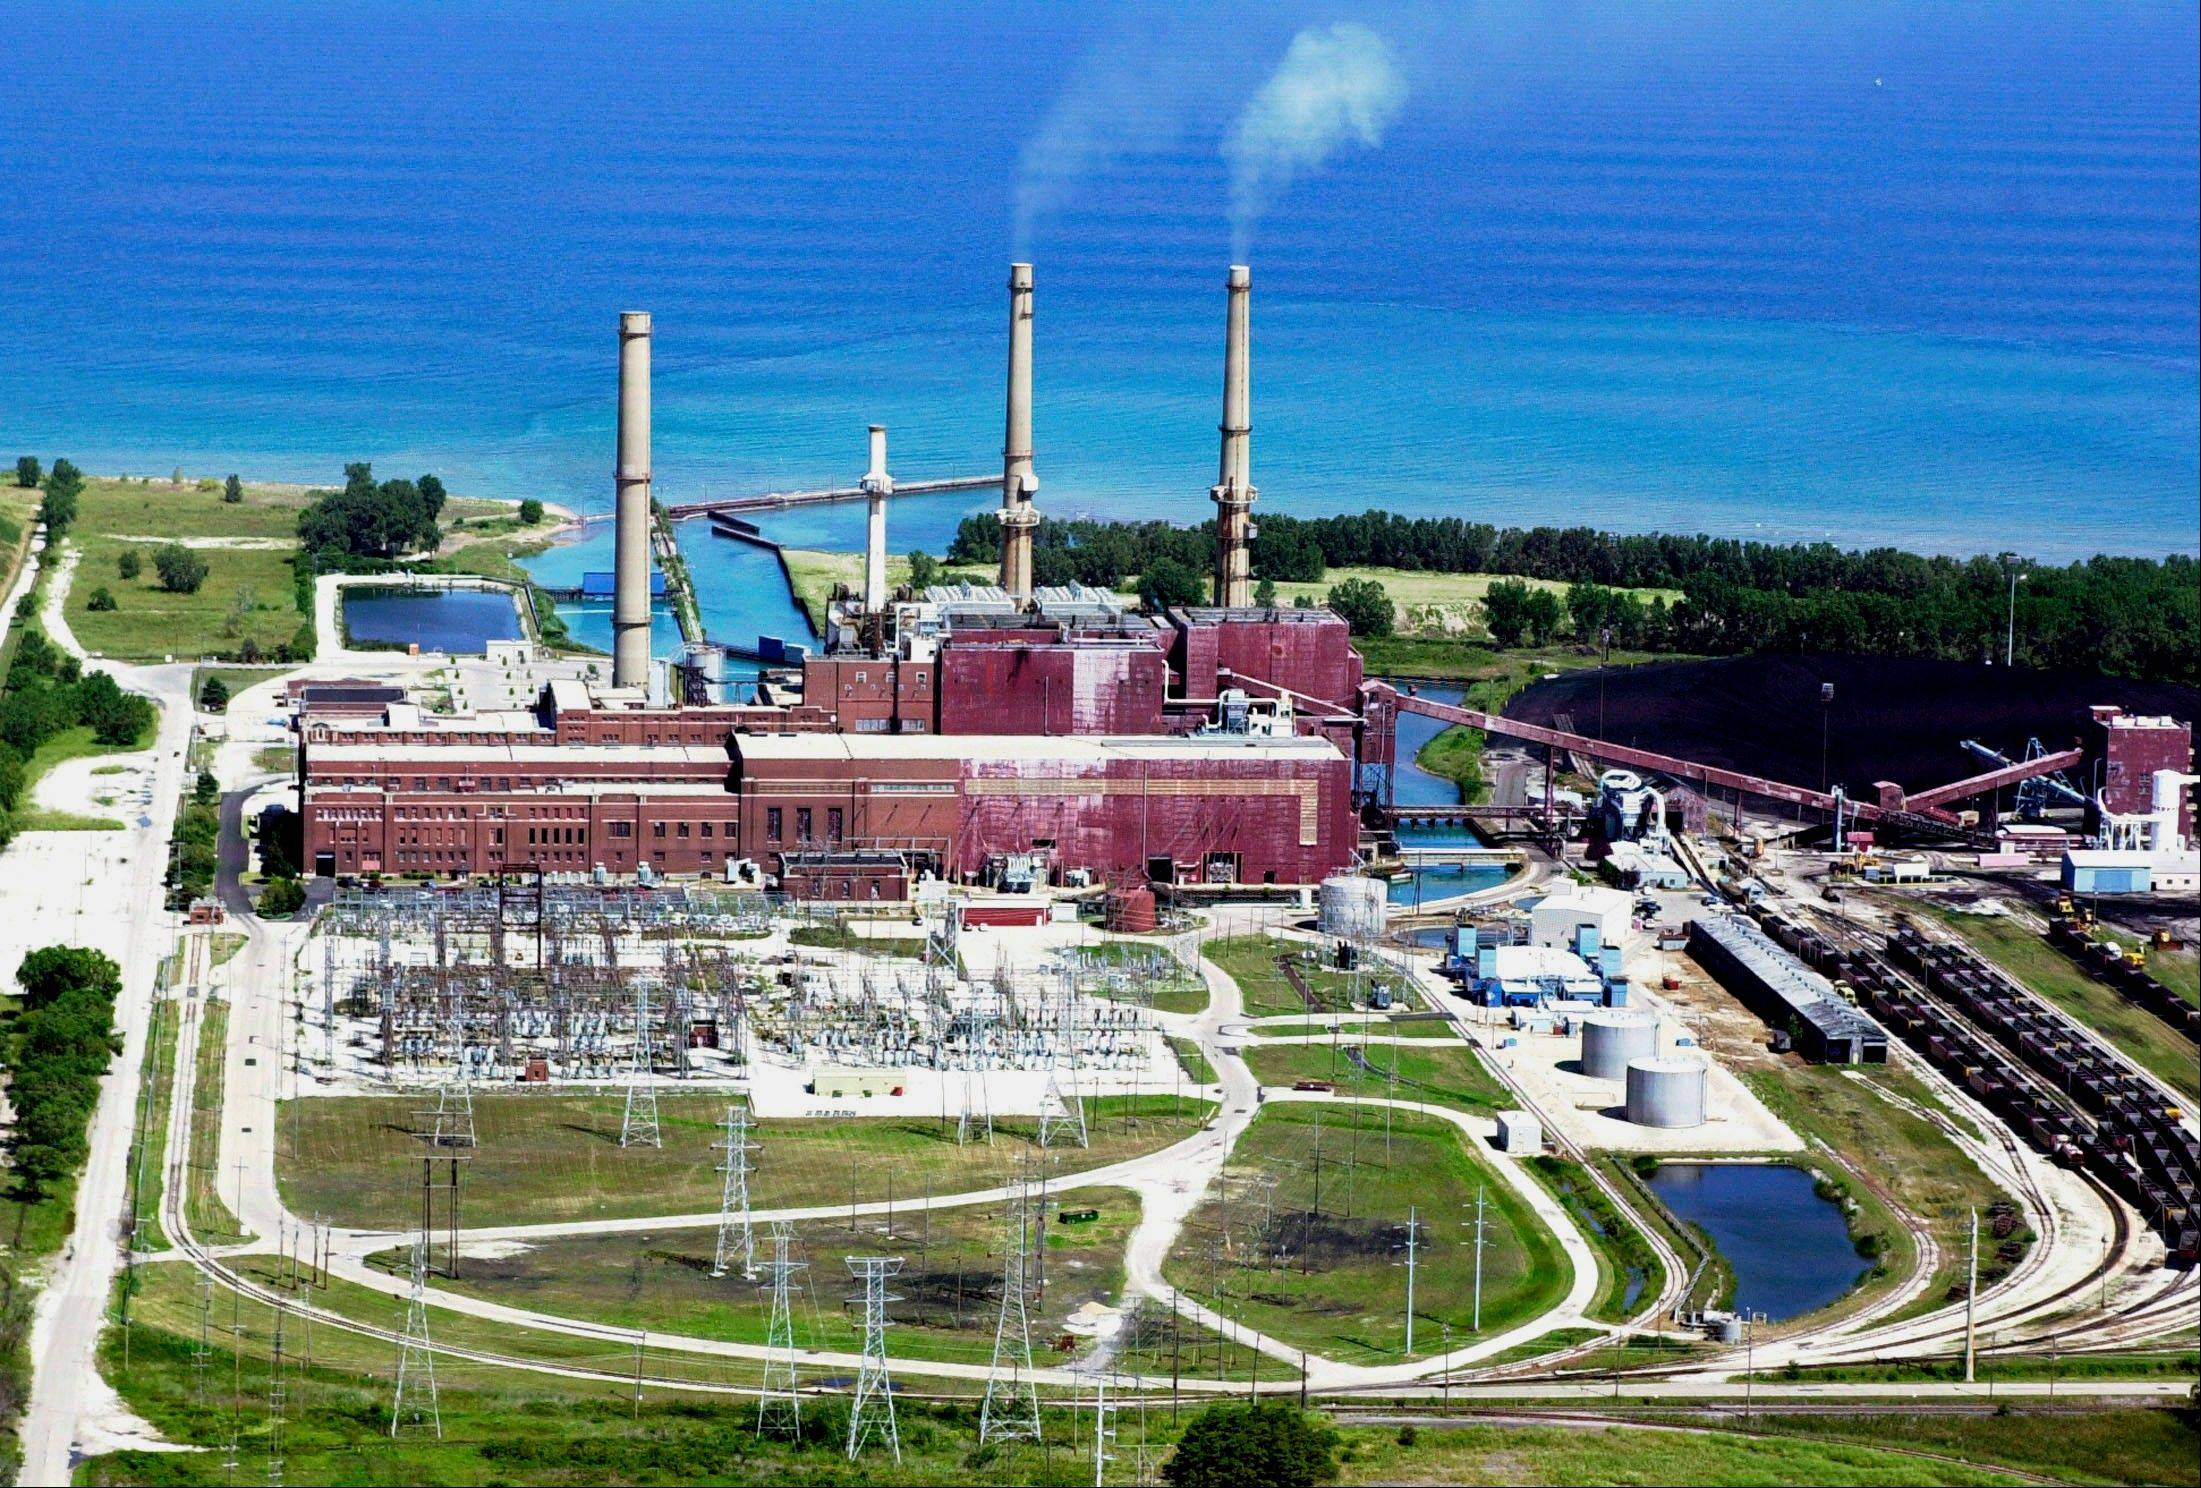 Midwest Generation's Waukegan Generating Station, built in 1923, sits on the shore of Lake Michigan.